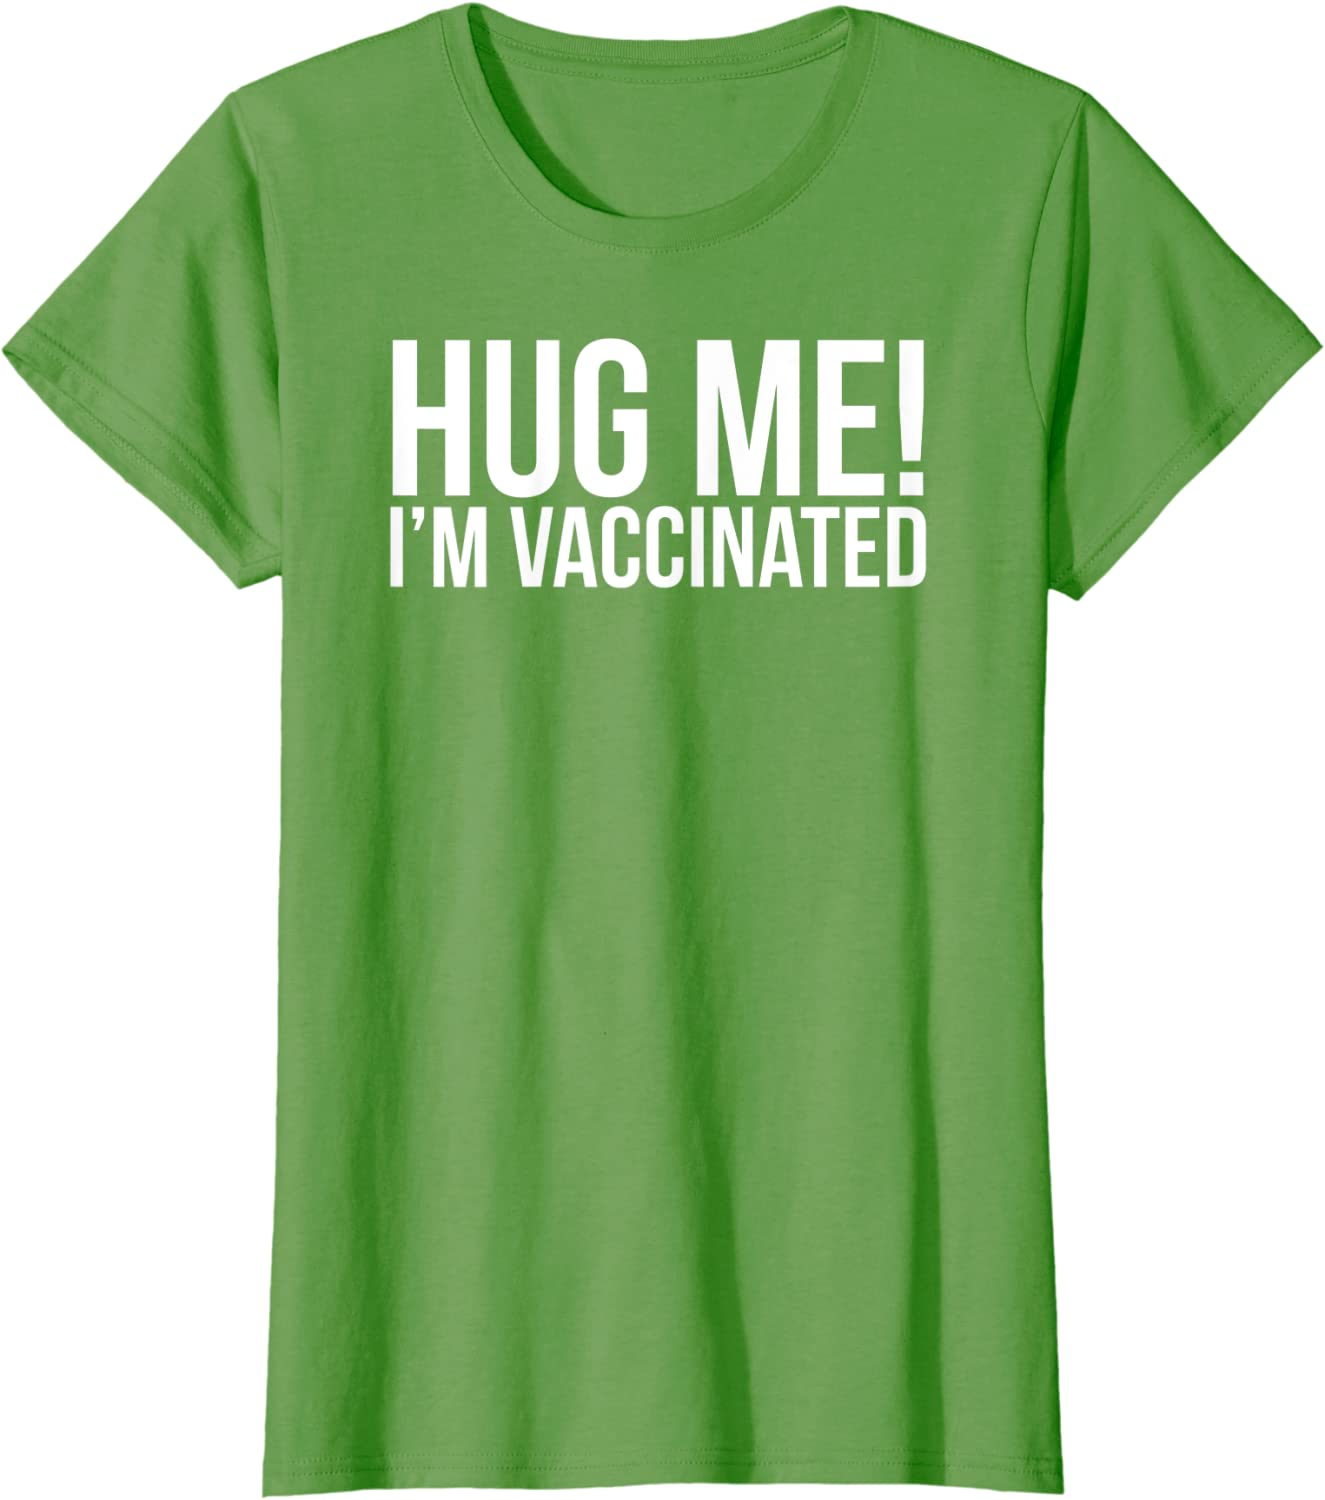 Hug Me I/'m Vaccinated Tshirt essential worker Tee, Gift for health care worker